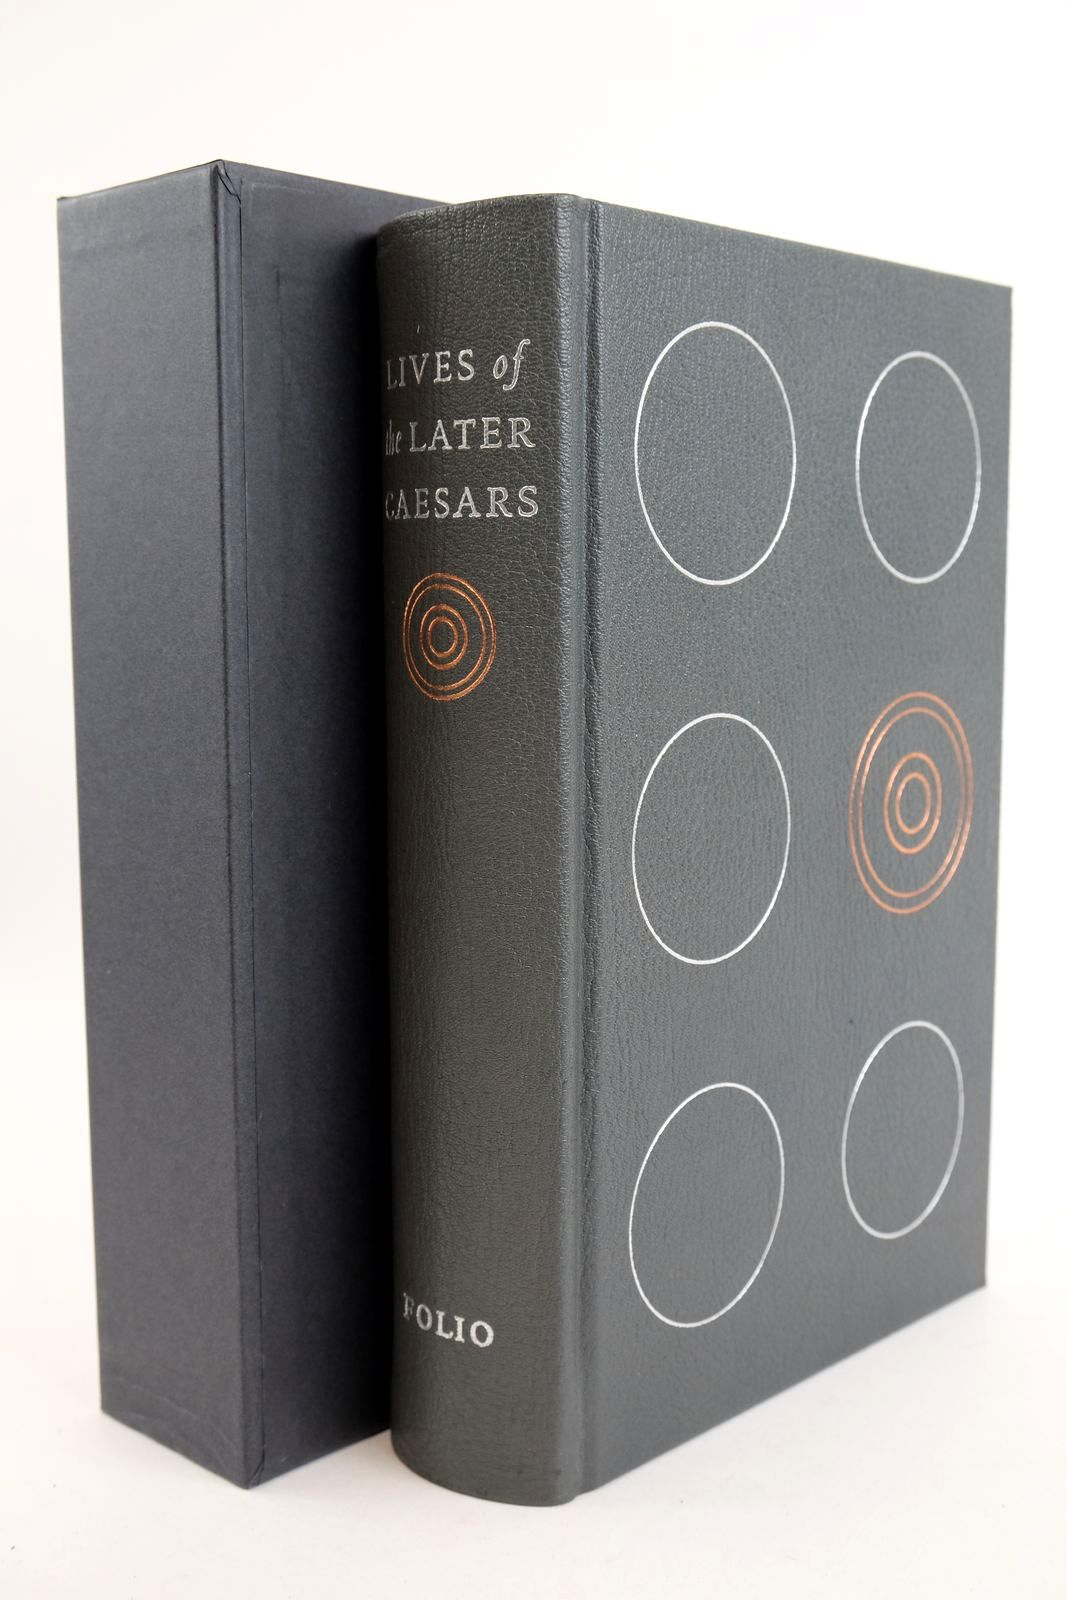 Photo of LIVES OF THE LATER CAESARS written by Birley, Anthony R. illustrated by Scullard, Sue published by Folio Society (STOCK CODE: 1318897)  for sale by Stella & Rose's Books